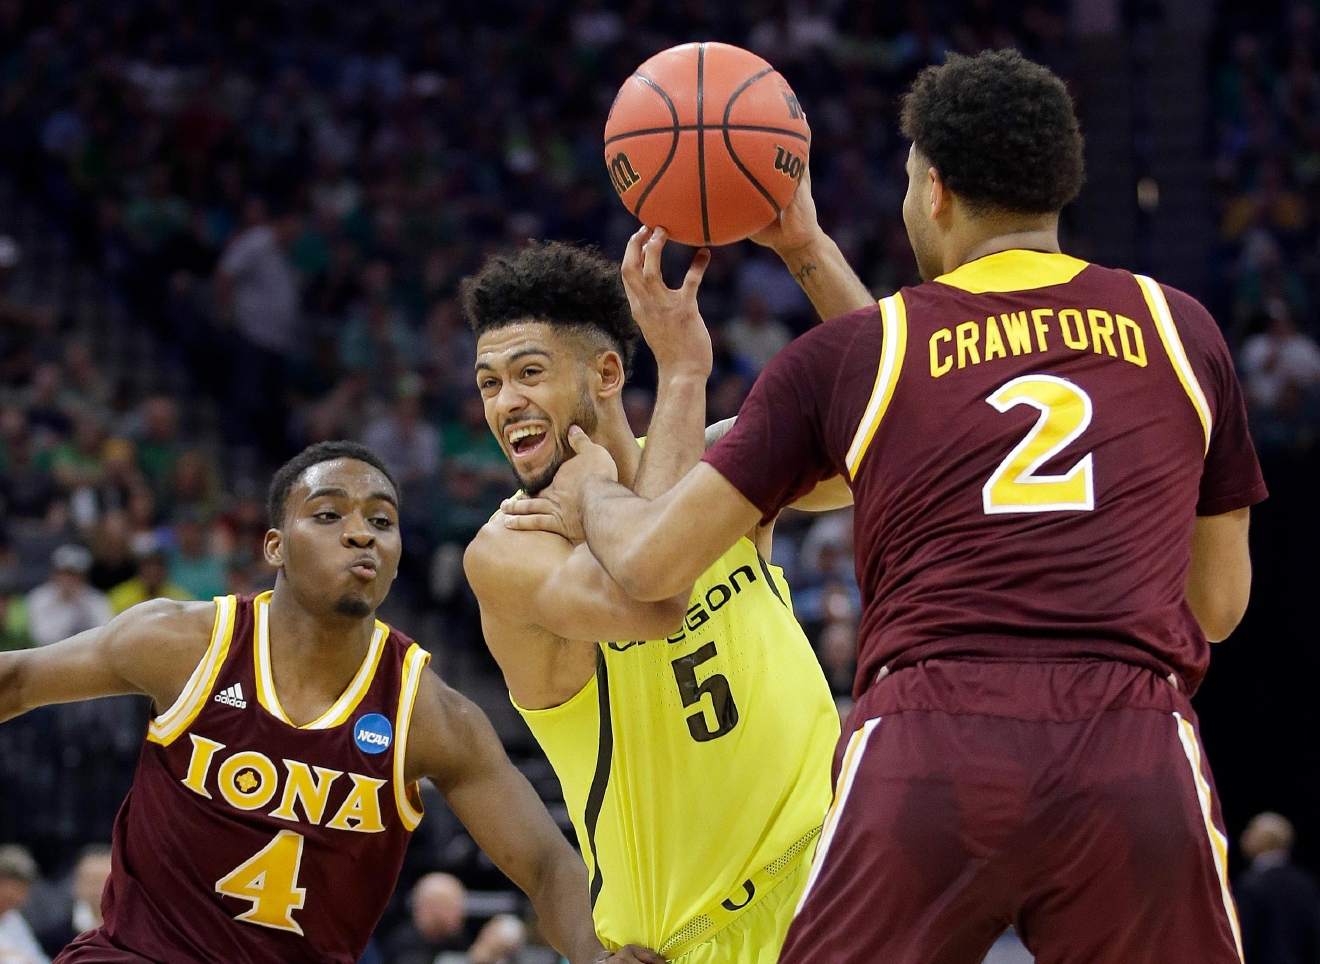 Oregon's Tyler Dorsey, center, drives between Iona's Schadrac Casimir, left, and E.J. Crawford, during the first half of a first-round game in the men's NCAA college basketball tournament Sacramento, Calif. Friday, March 17, 2017. (AP Photo/Rich Pedroncelli)